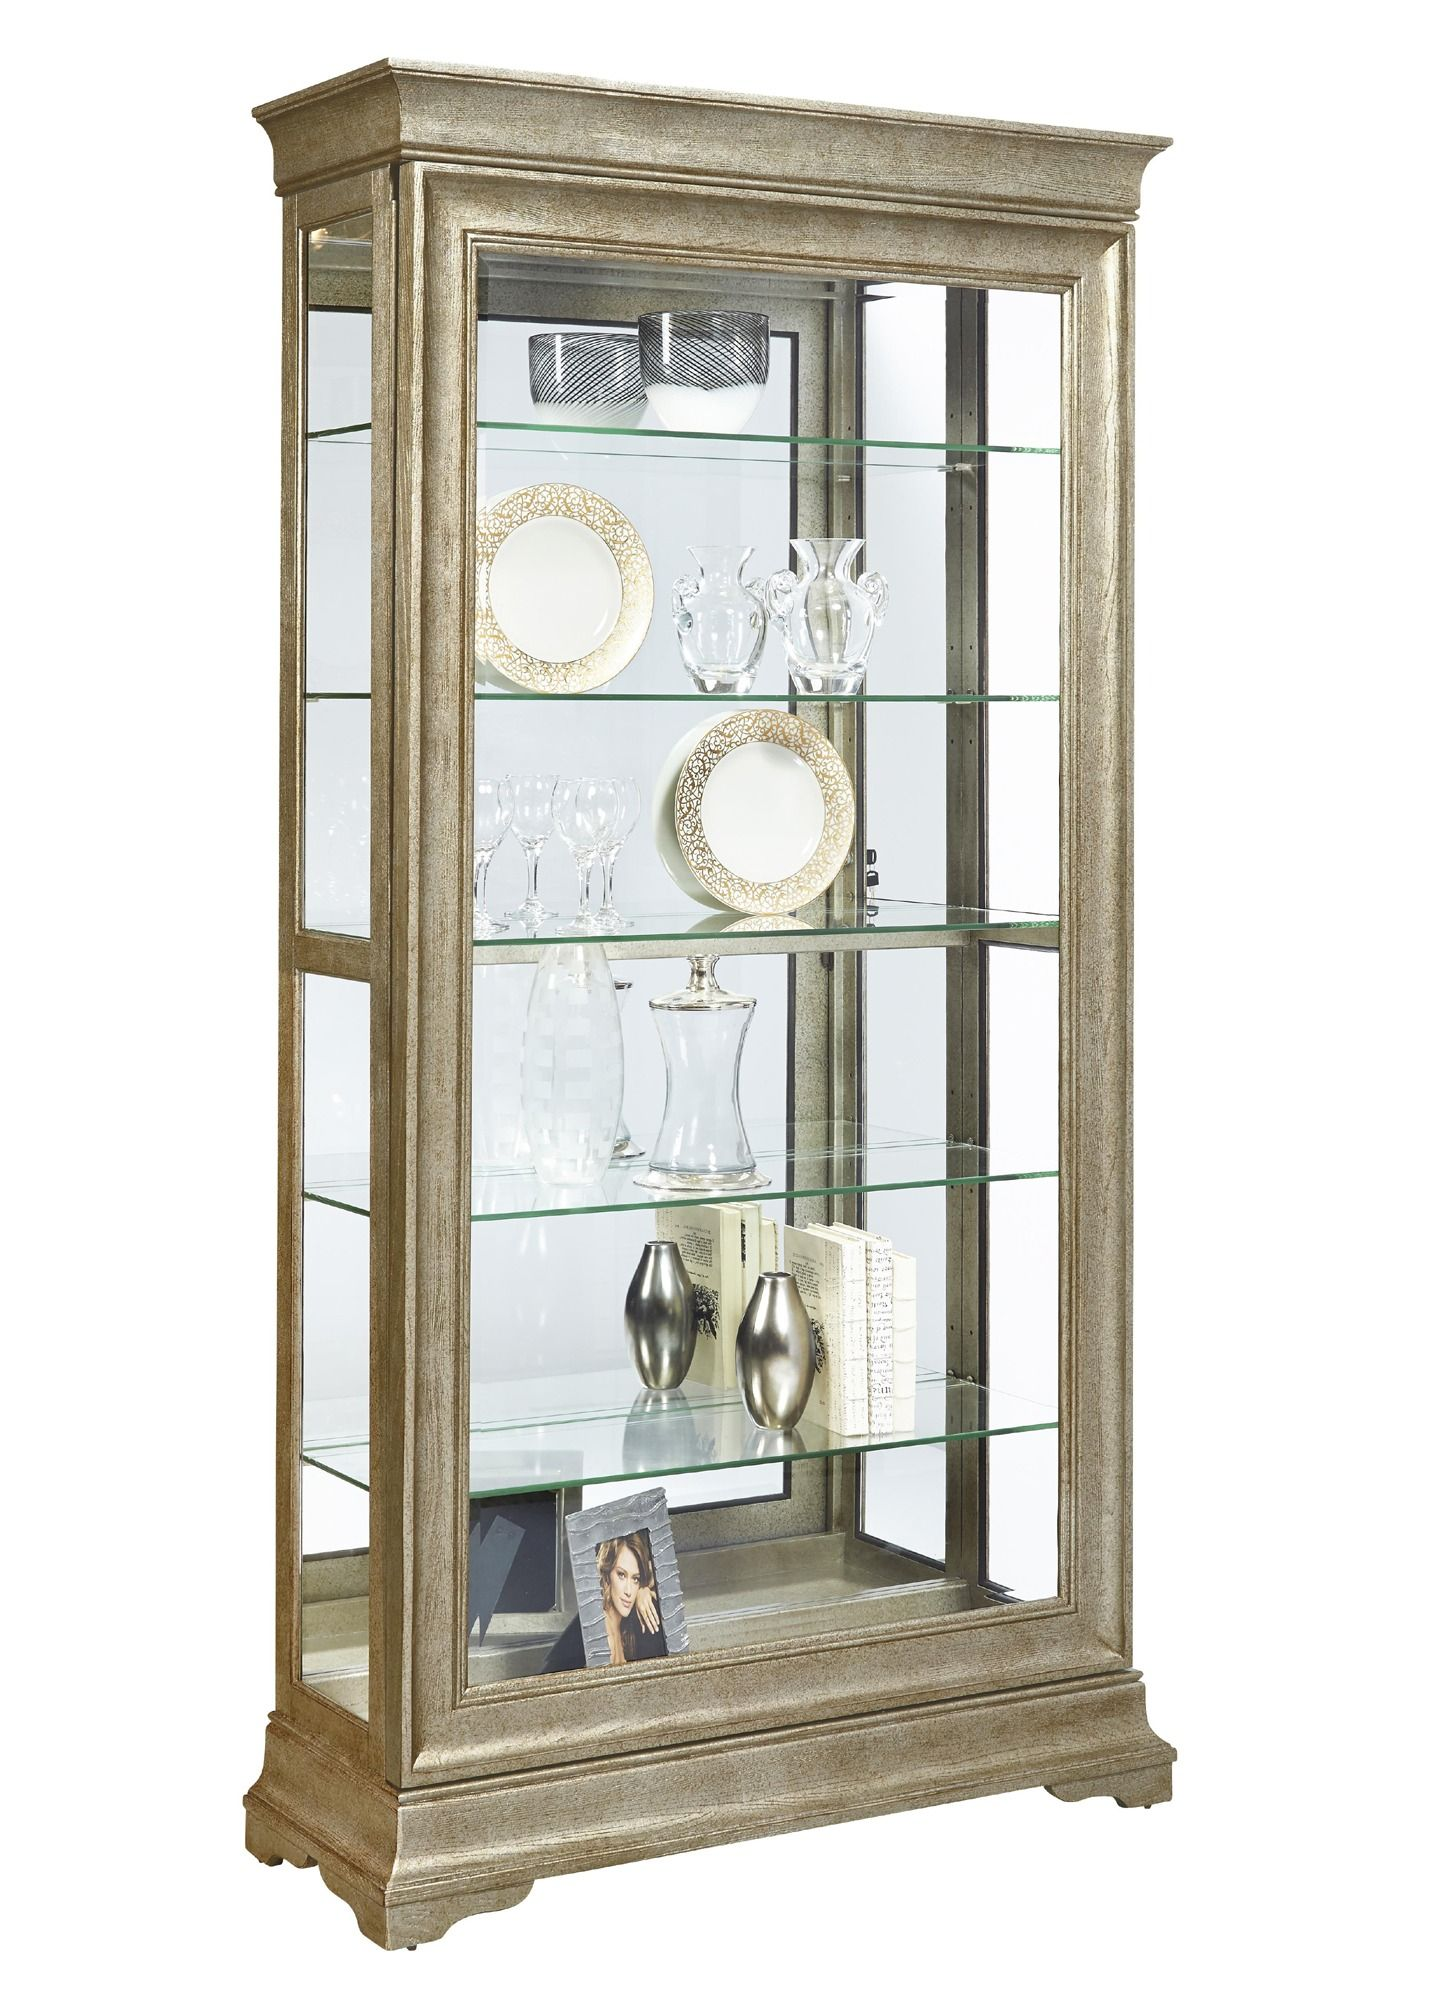 Lyon Curio Cabinet In Distressed Wood Finish By Pulaski Home Gallery Stores Servant Uyutnyj Dom Mebel